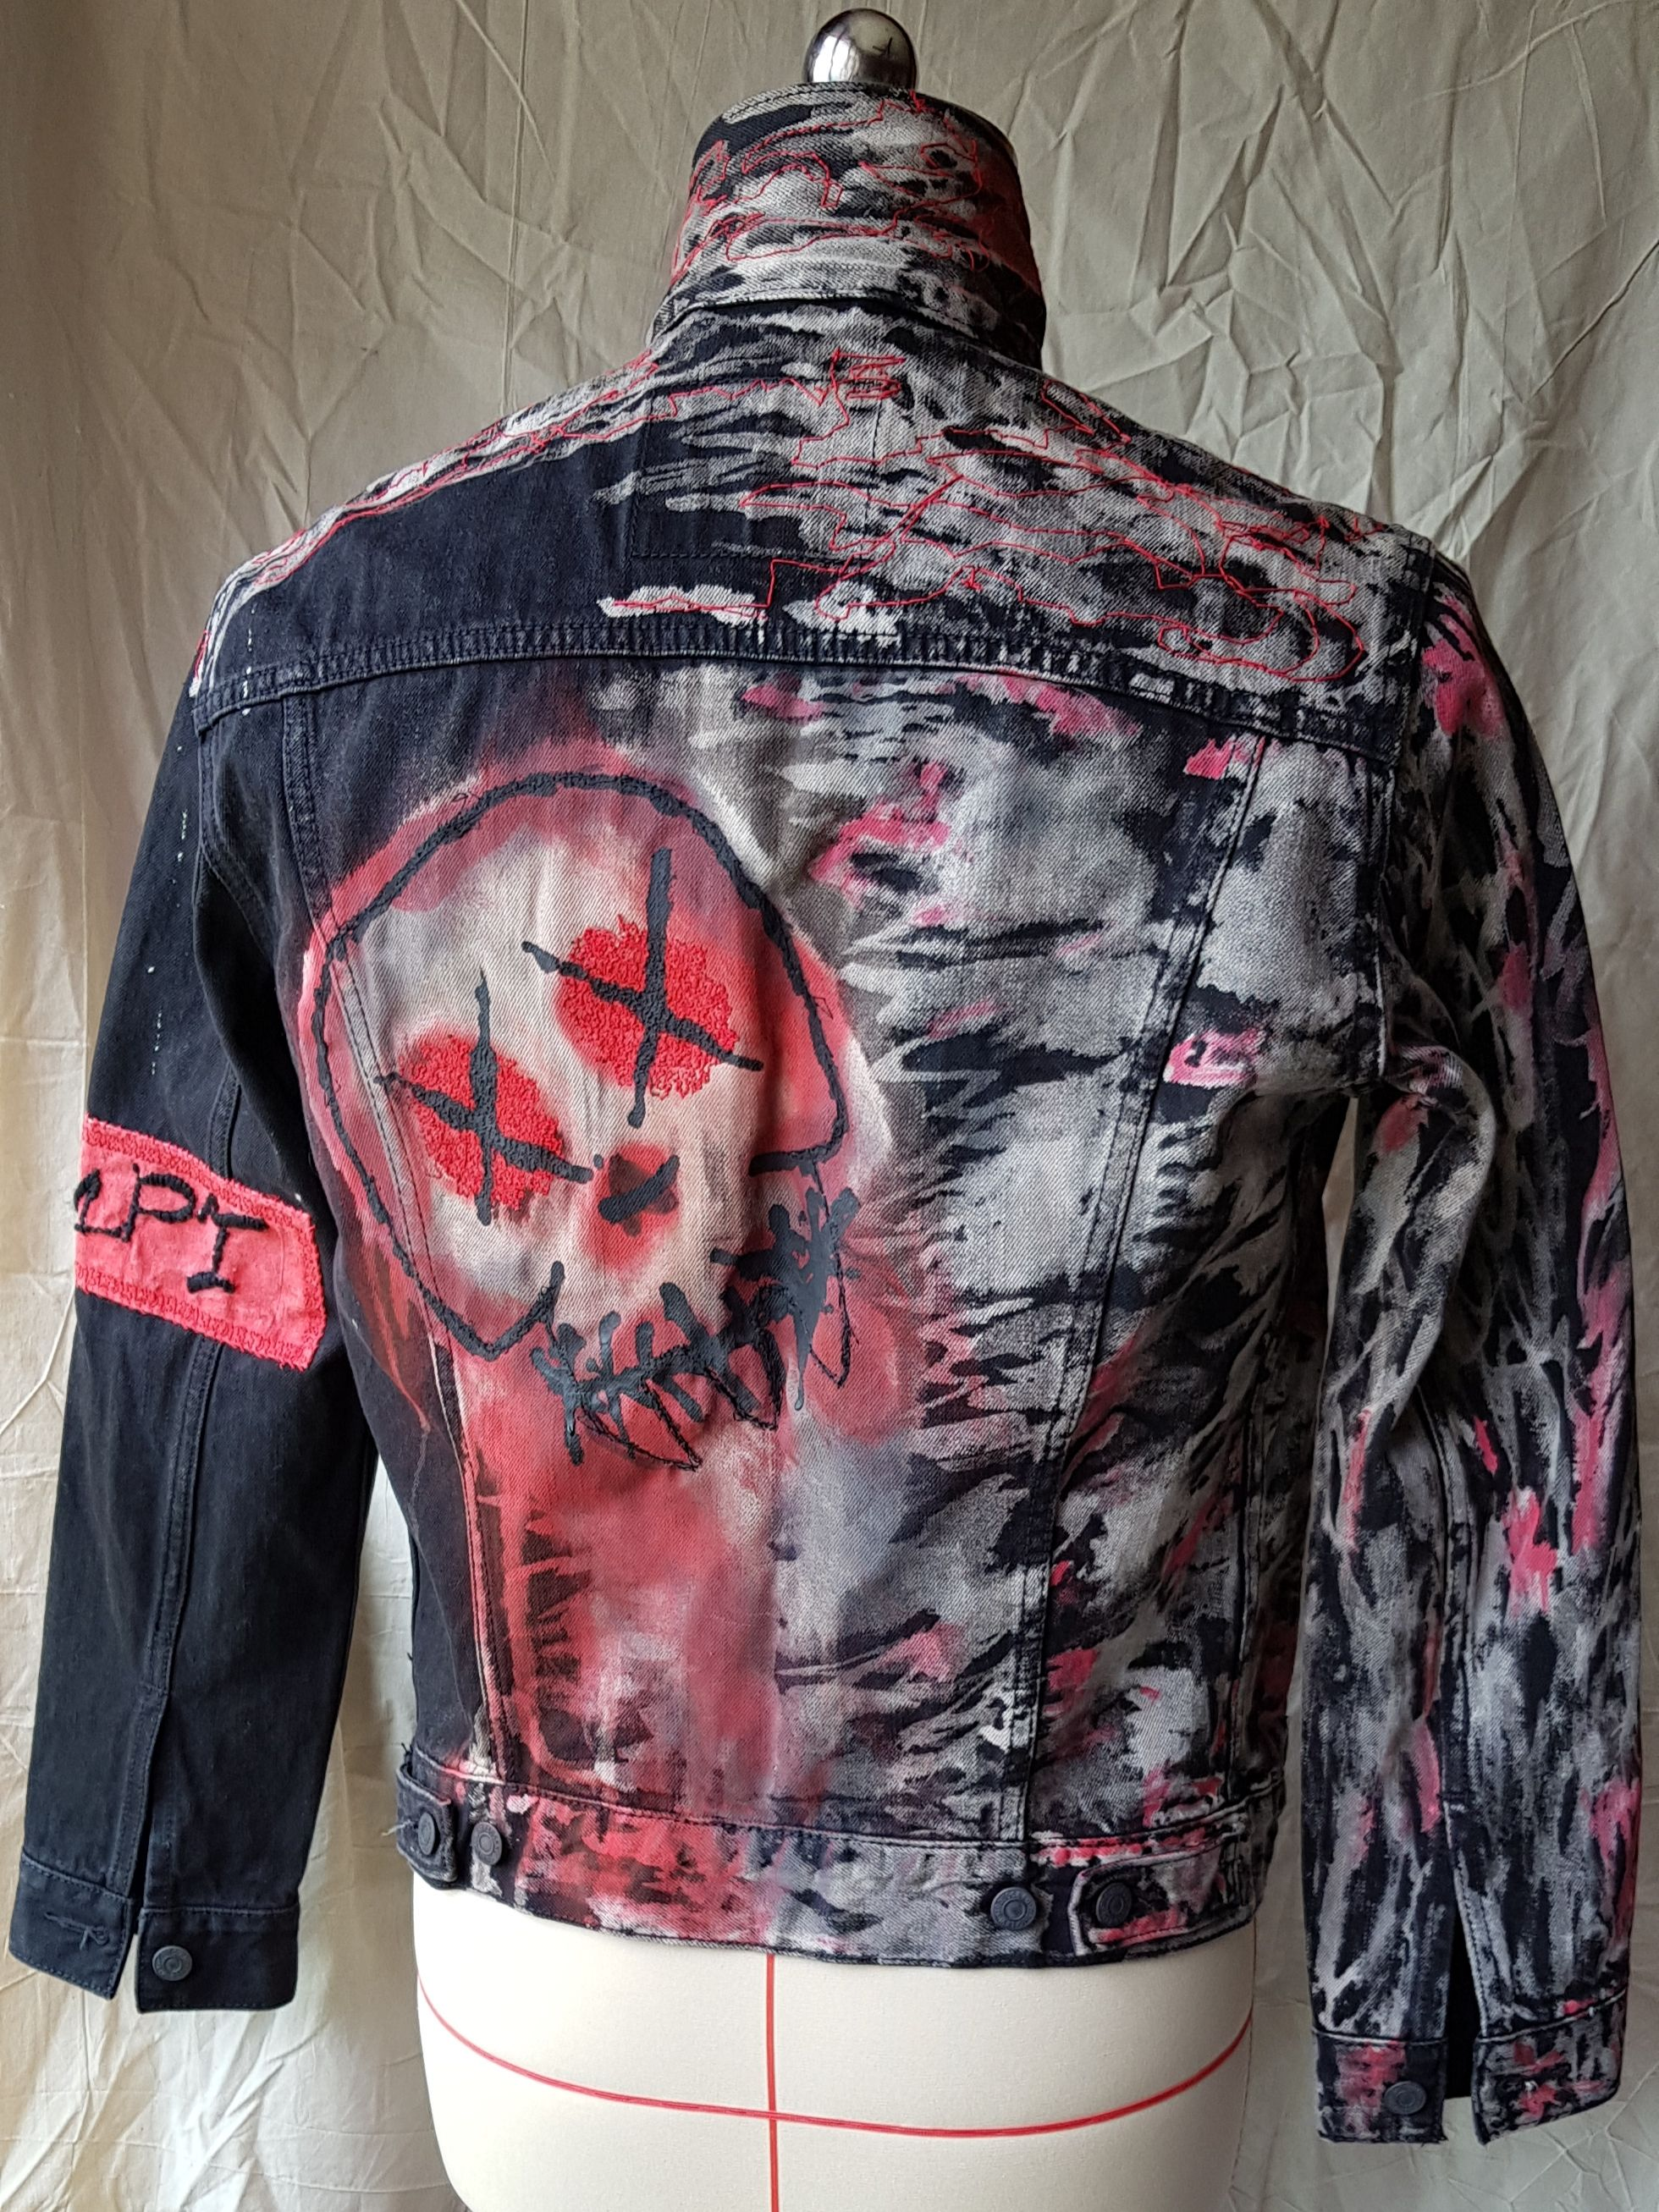 This Is A One Off Hand Painted Graffiti Jacket Named The Beast For Sale